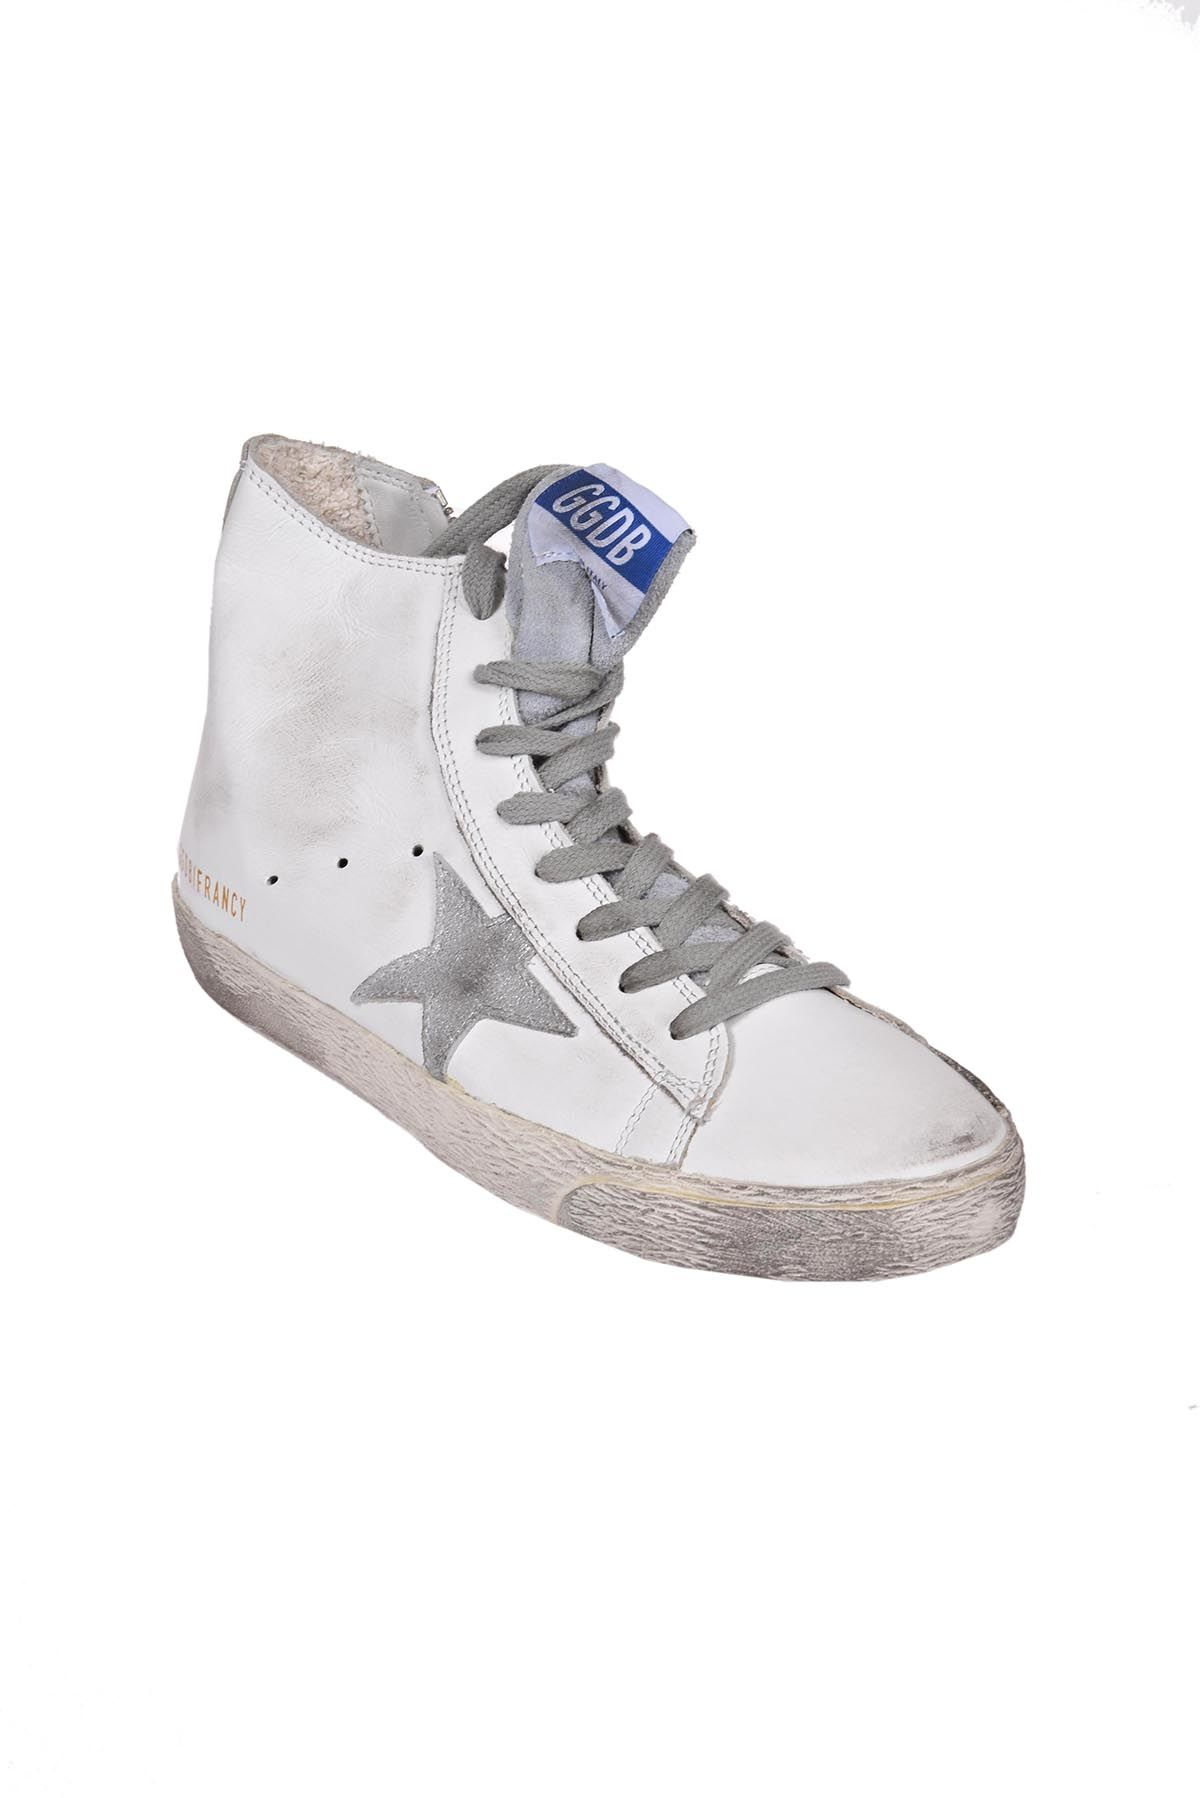 golden goose golden goose francy hi top sneakers white women 39 s sneakers italist. Black Bedroom Furniture Sets. Home Design Ideas